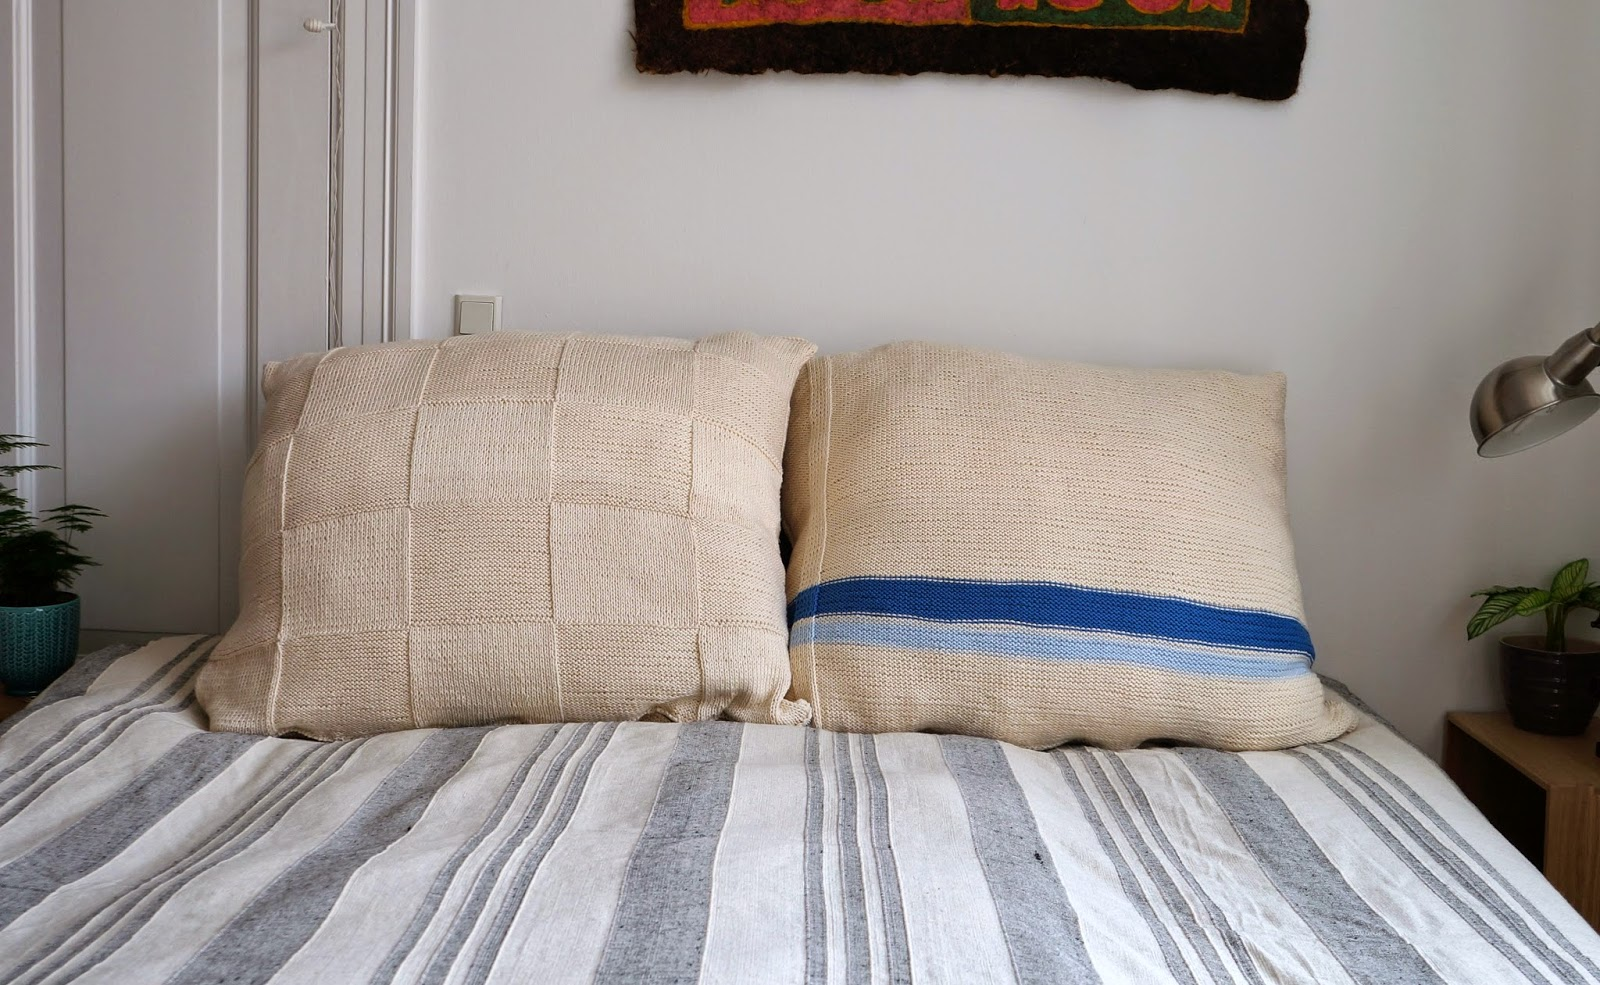 DIY Knitted Pillowcases Instead Of Headboard